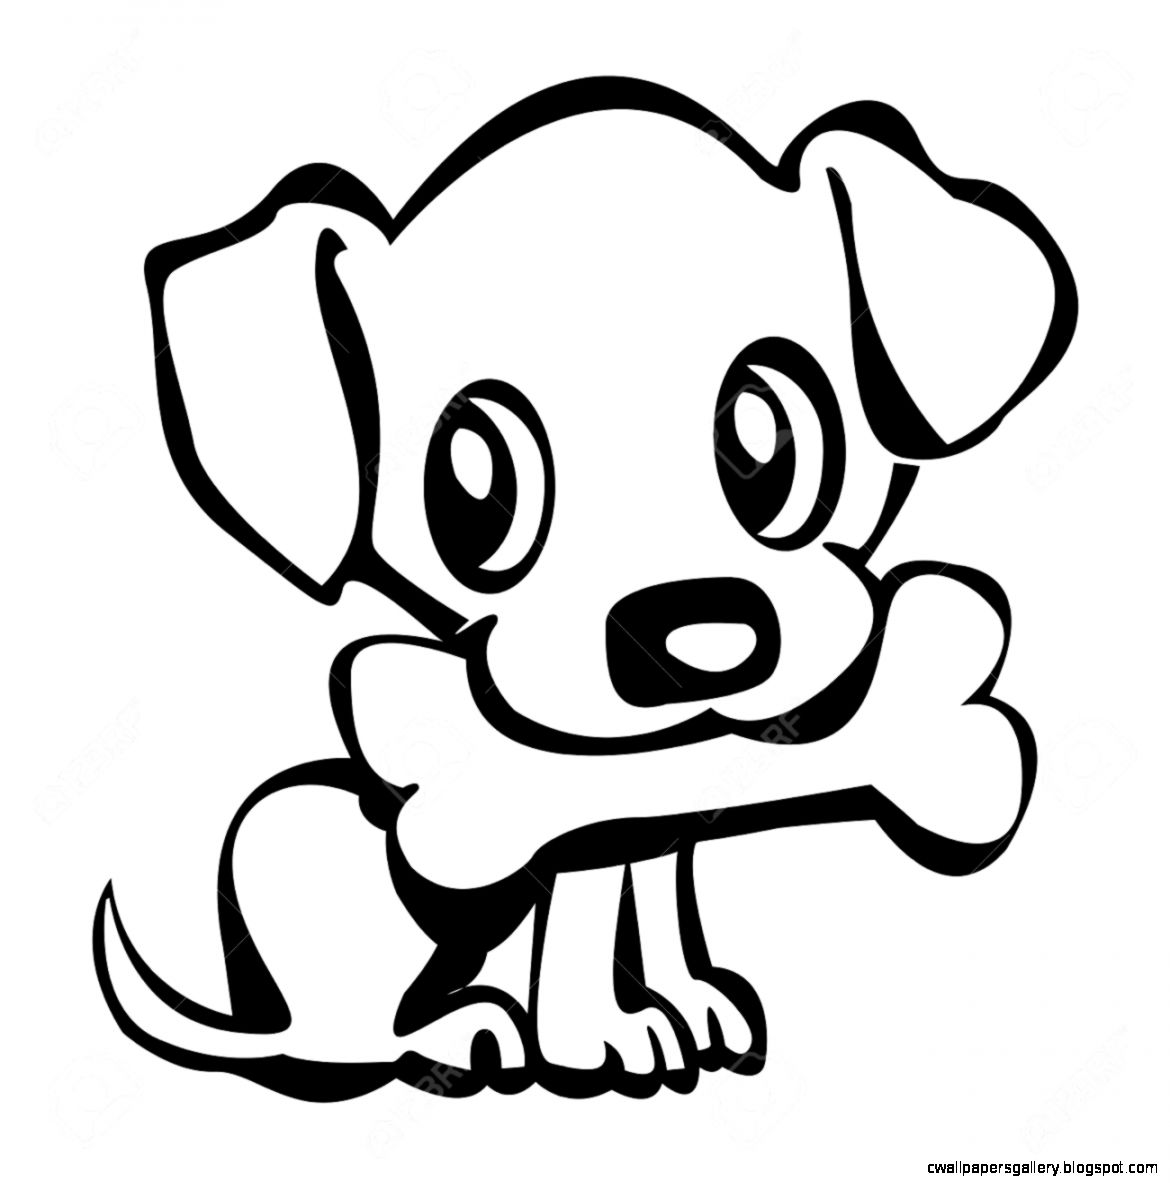 Line Drawing Of A Dog S Face : Cute dog face drawing wallpapers gallery